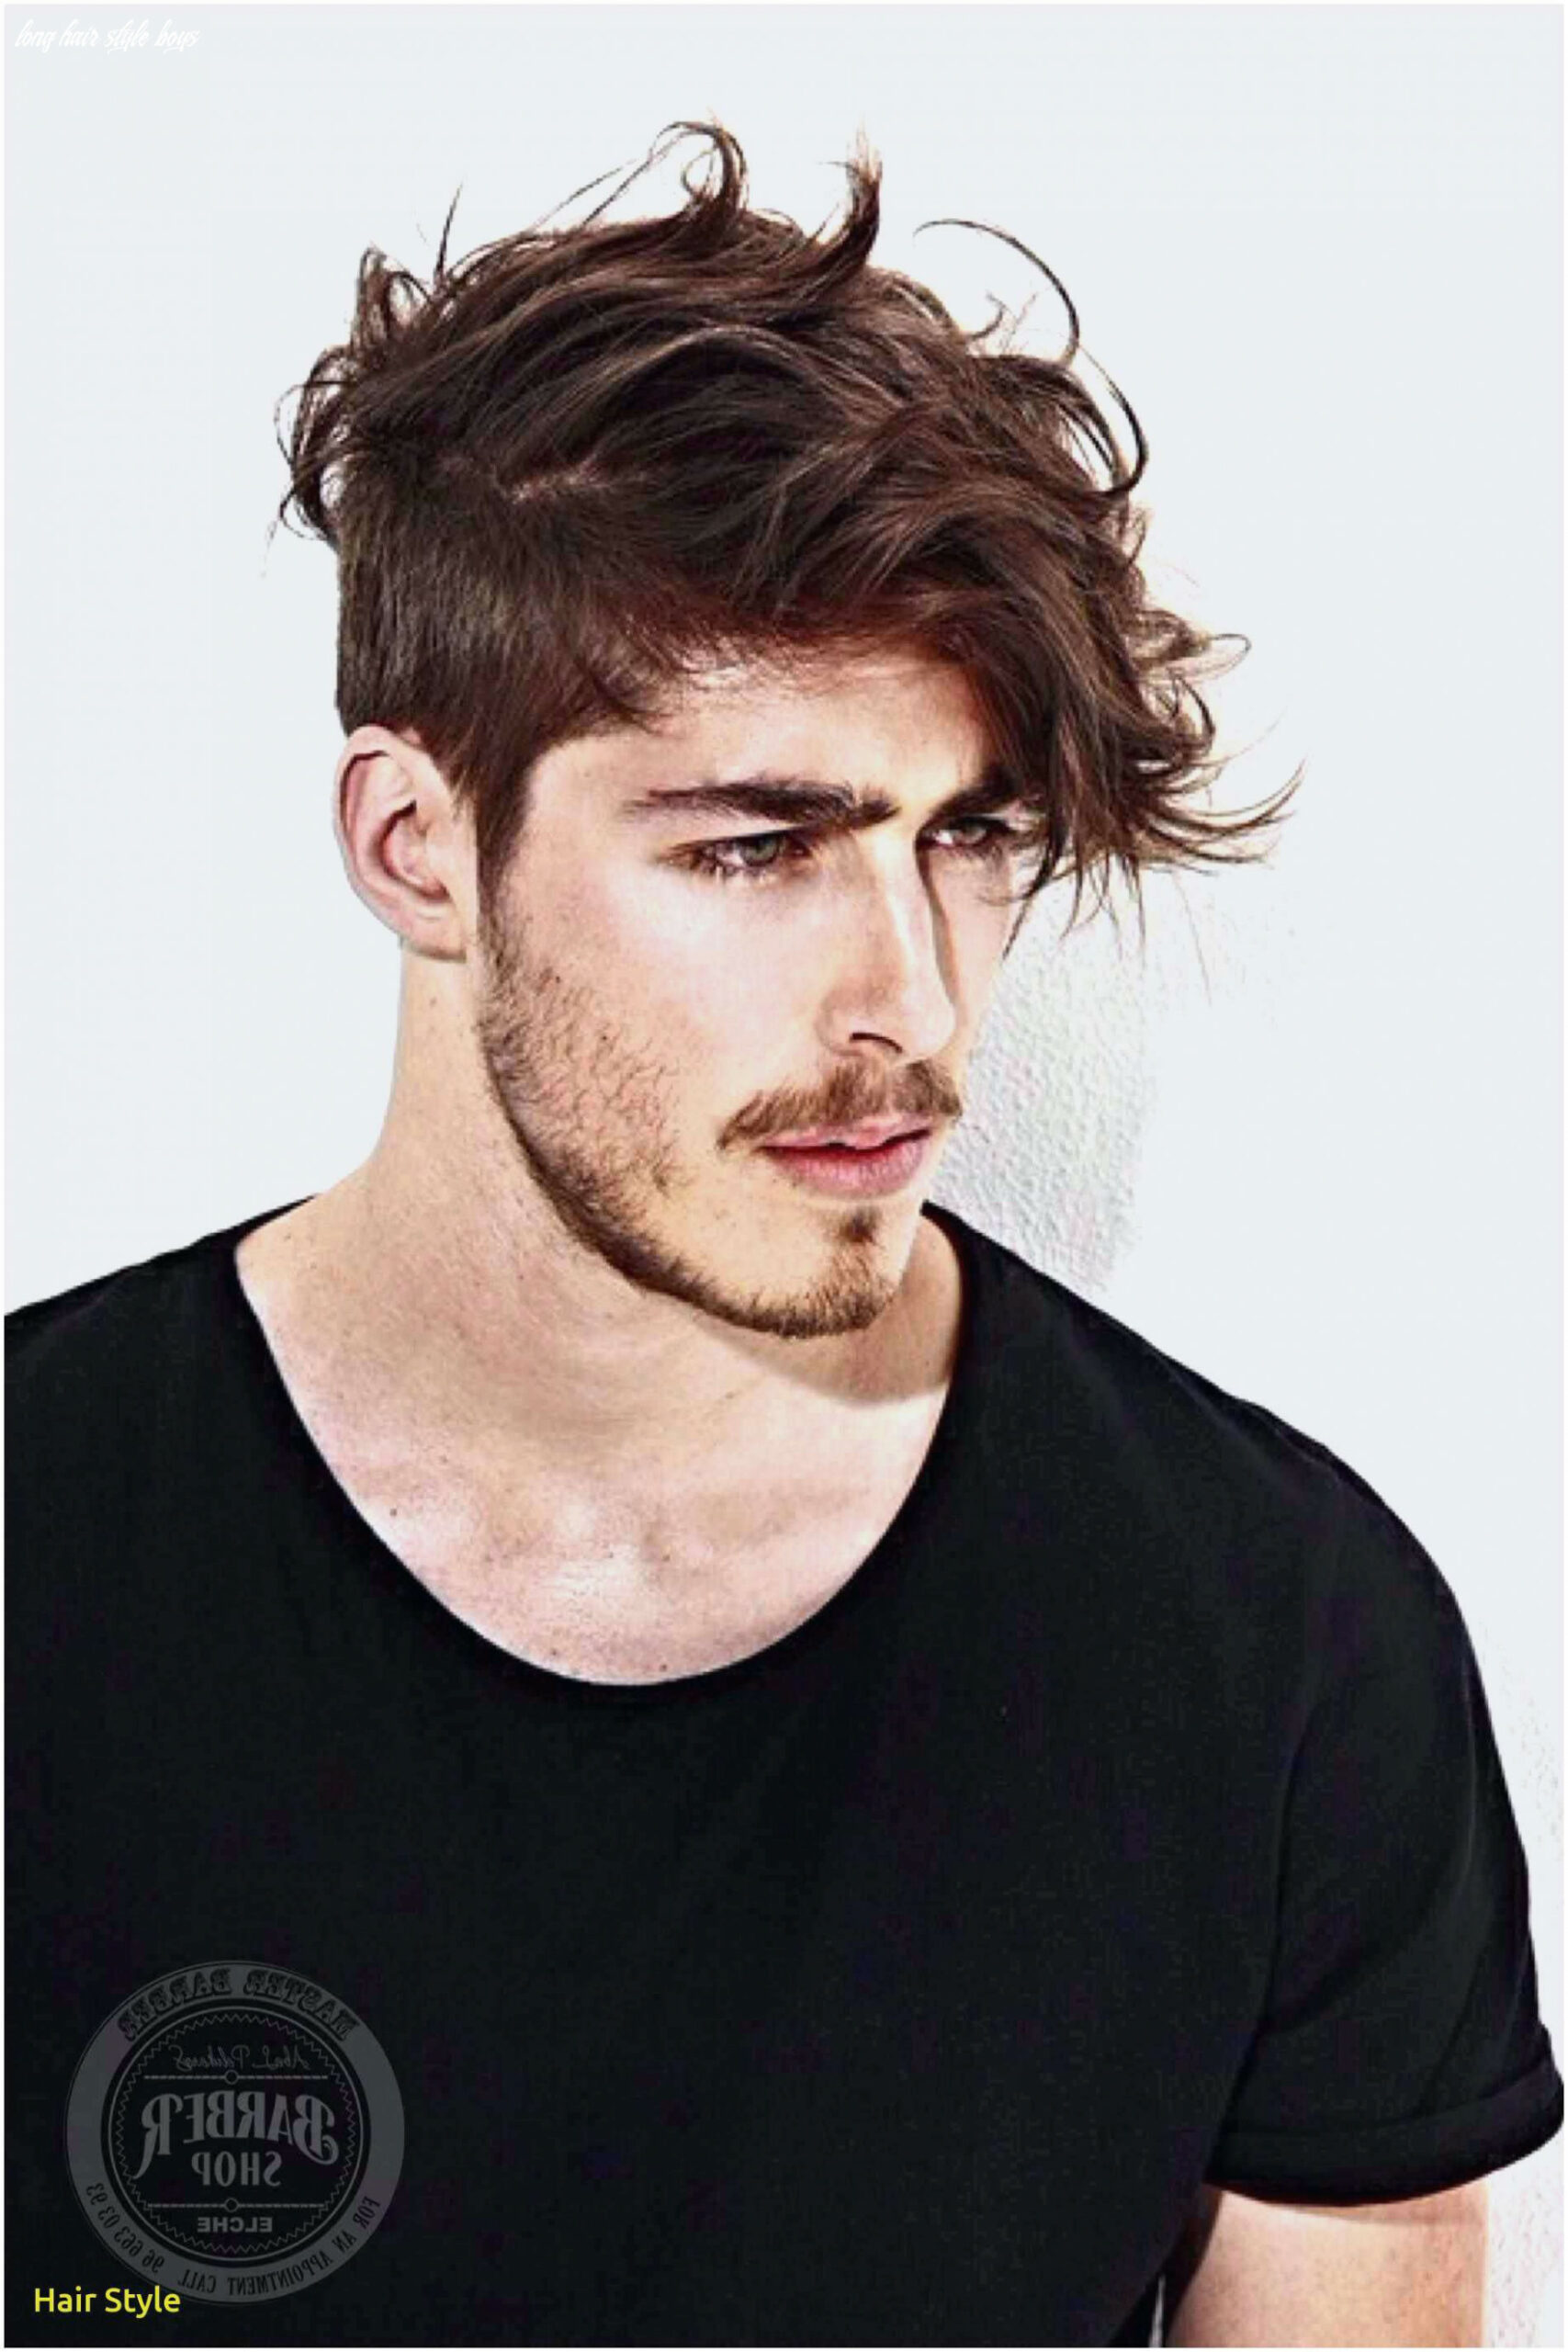 Hair Style Boys New Fashion Cool Men Long Hairstyle Awesome Dyed ...